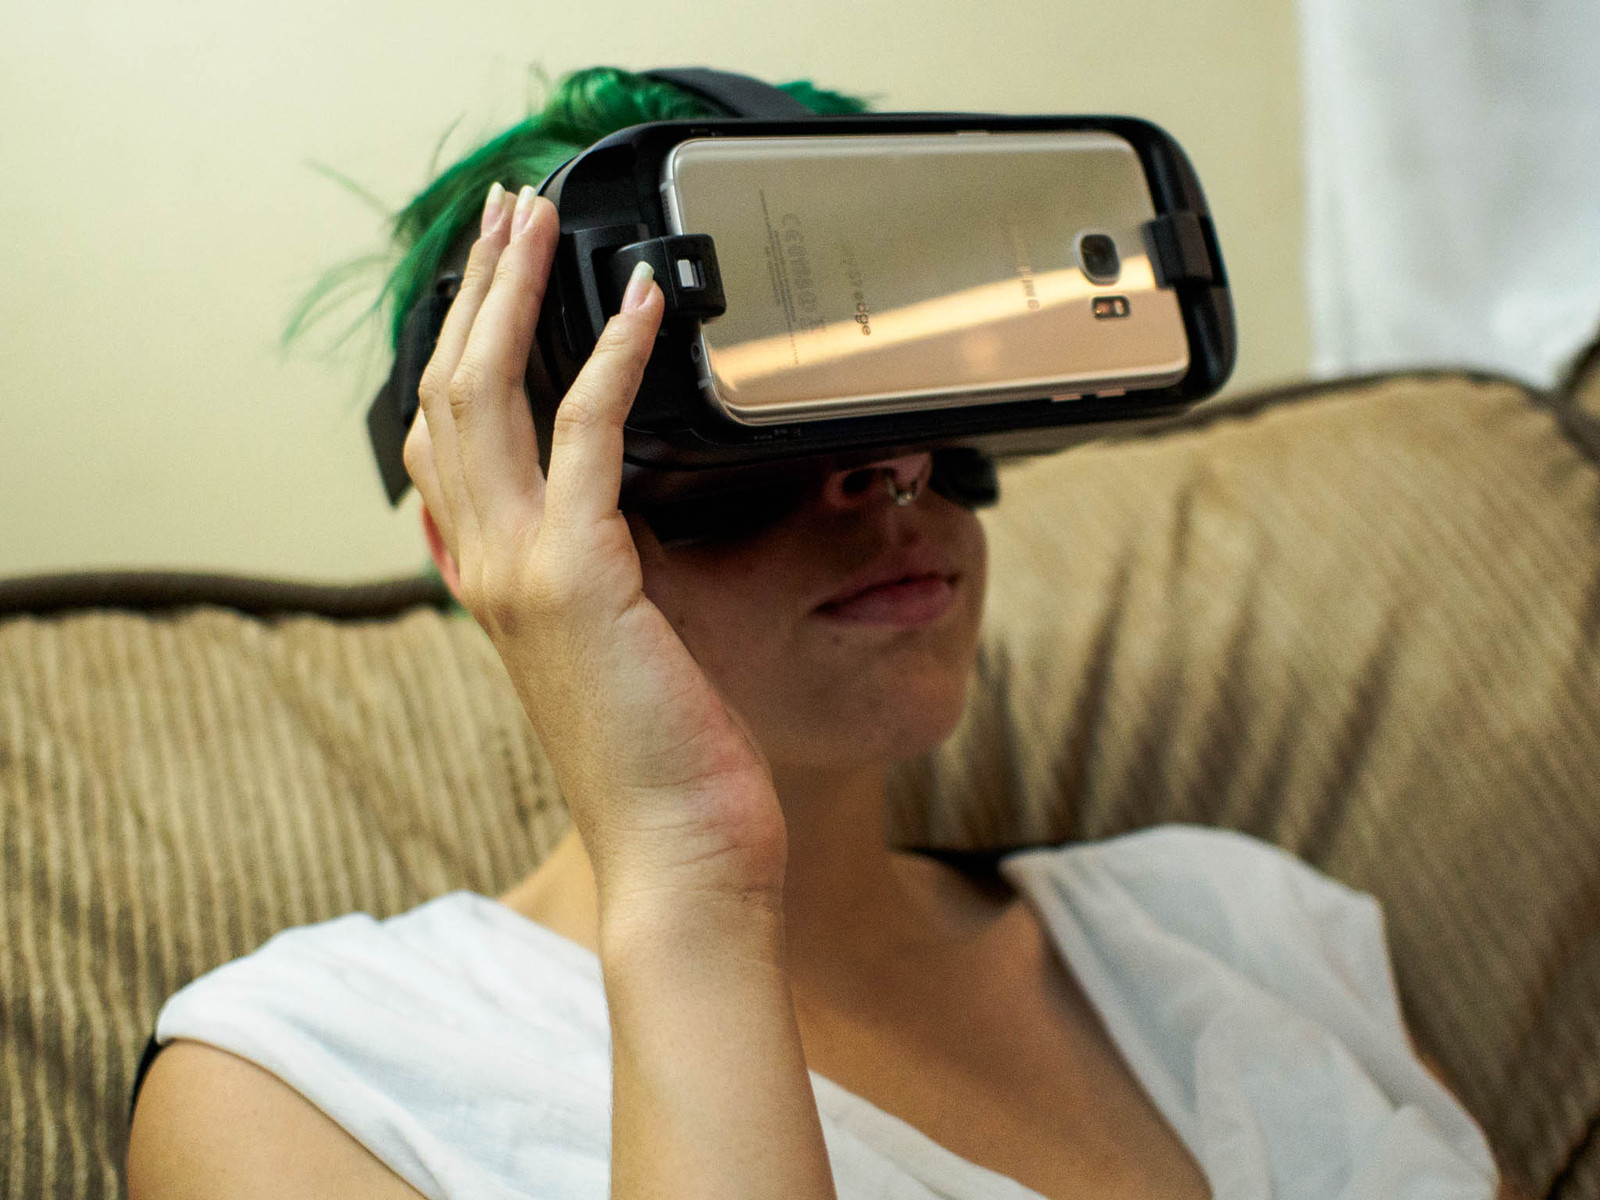 Vr headset and ready mobile porn